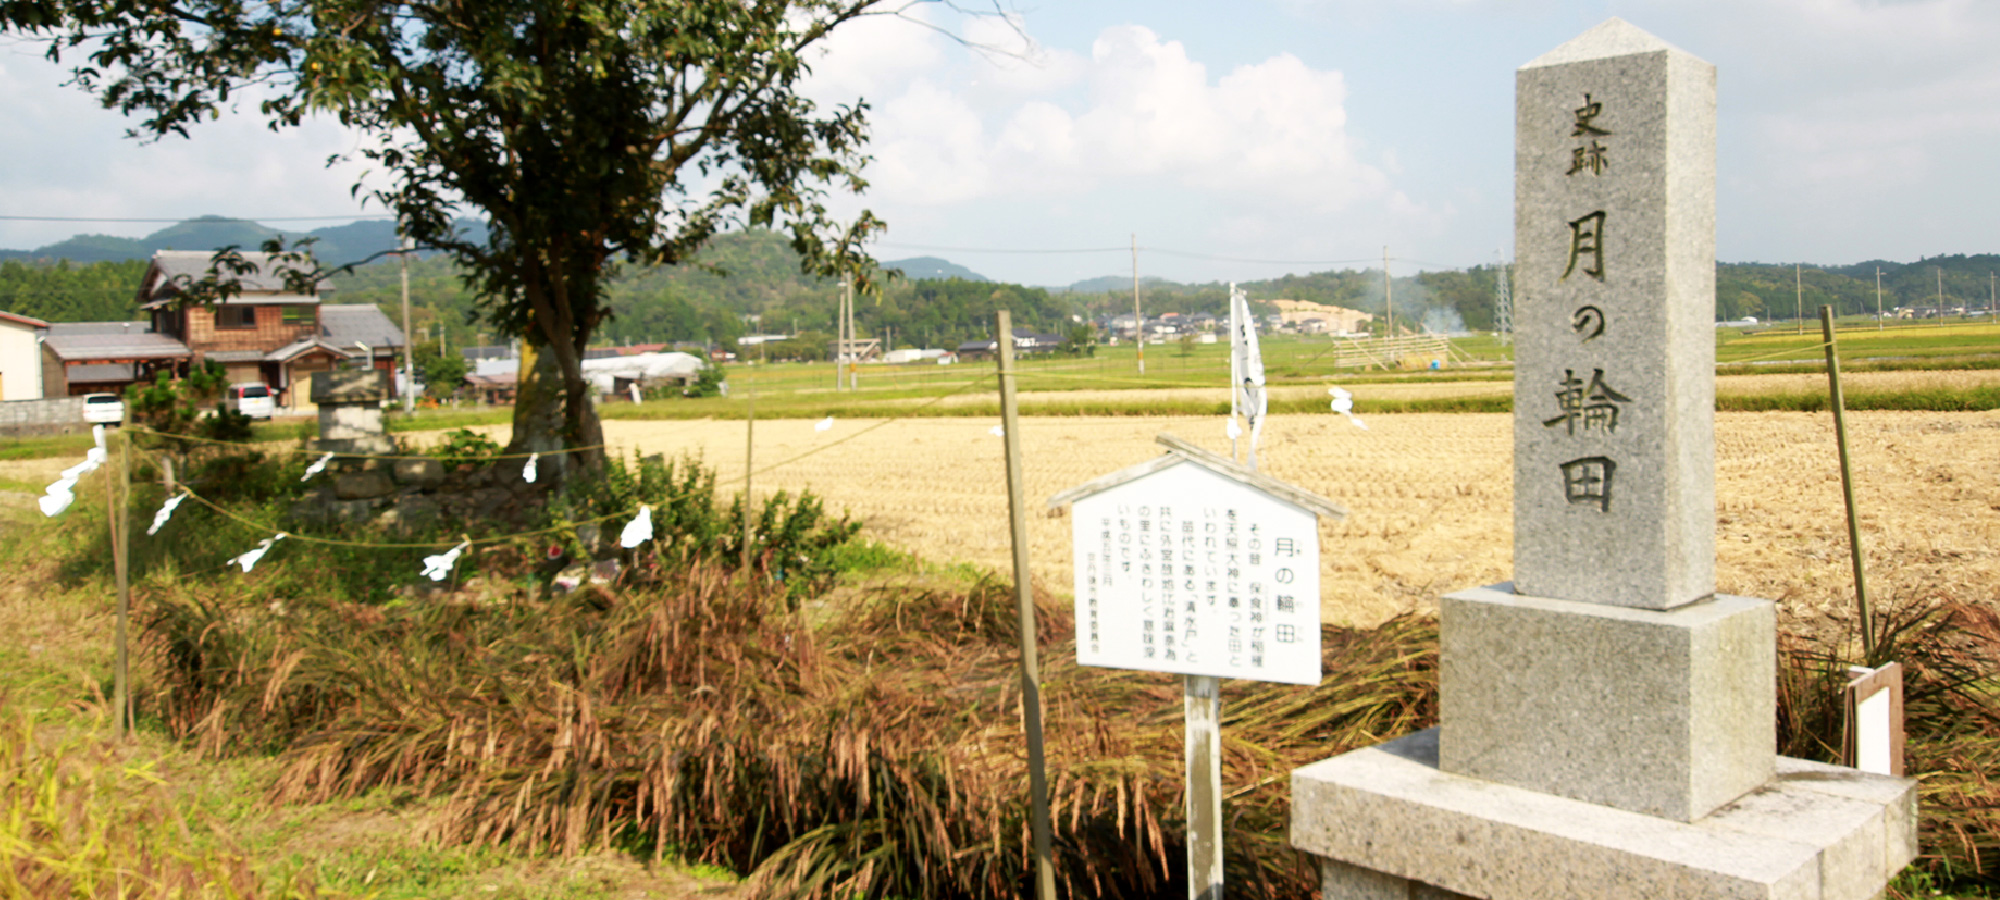 Birthplace of Japanese rice cultivation